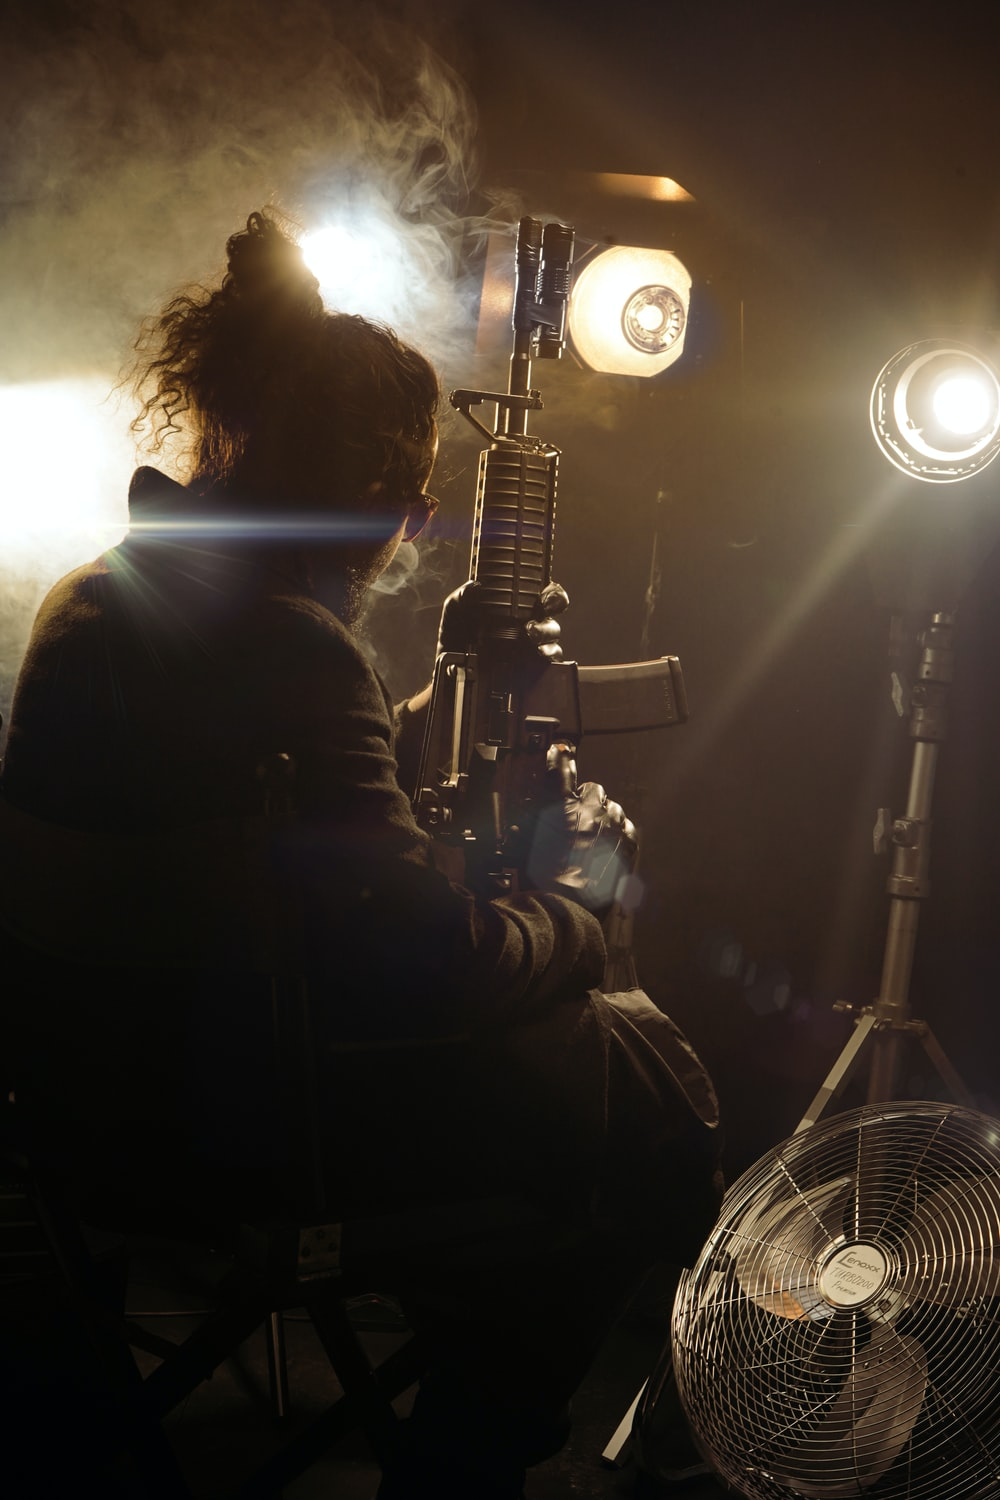 silhouette of 2 men standing in front of microphone